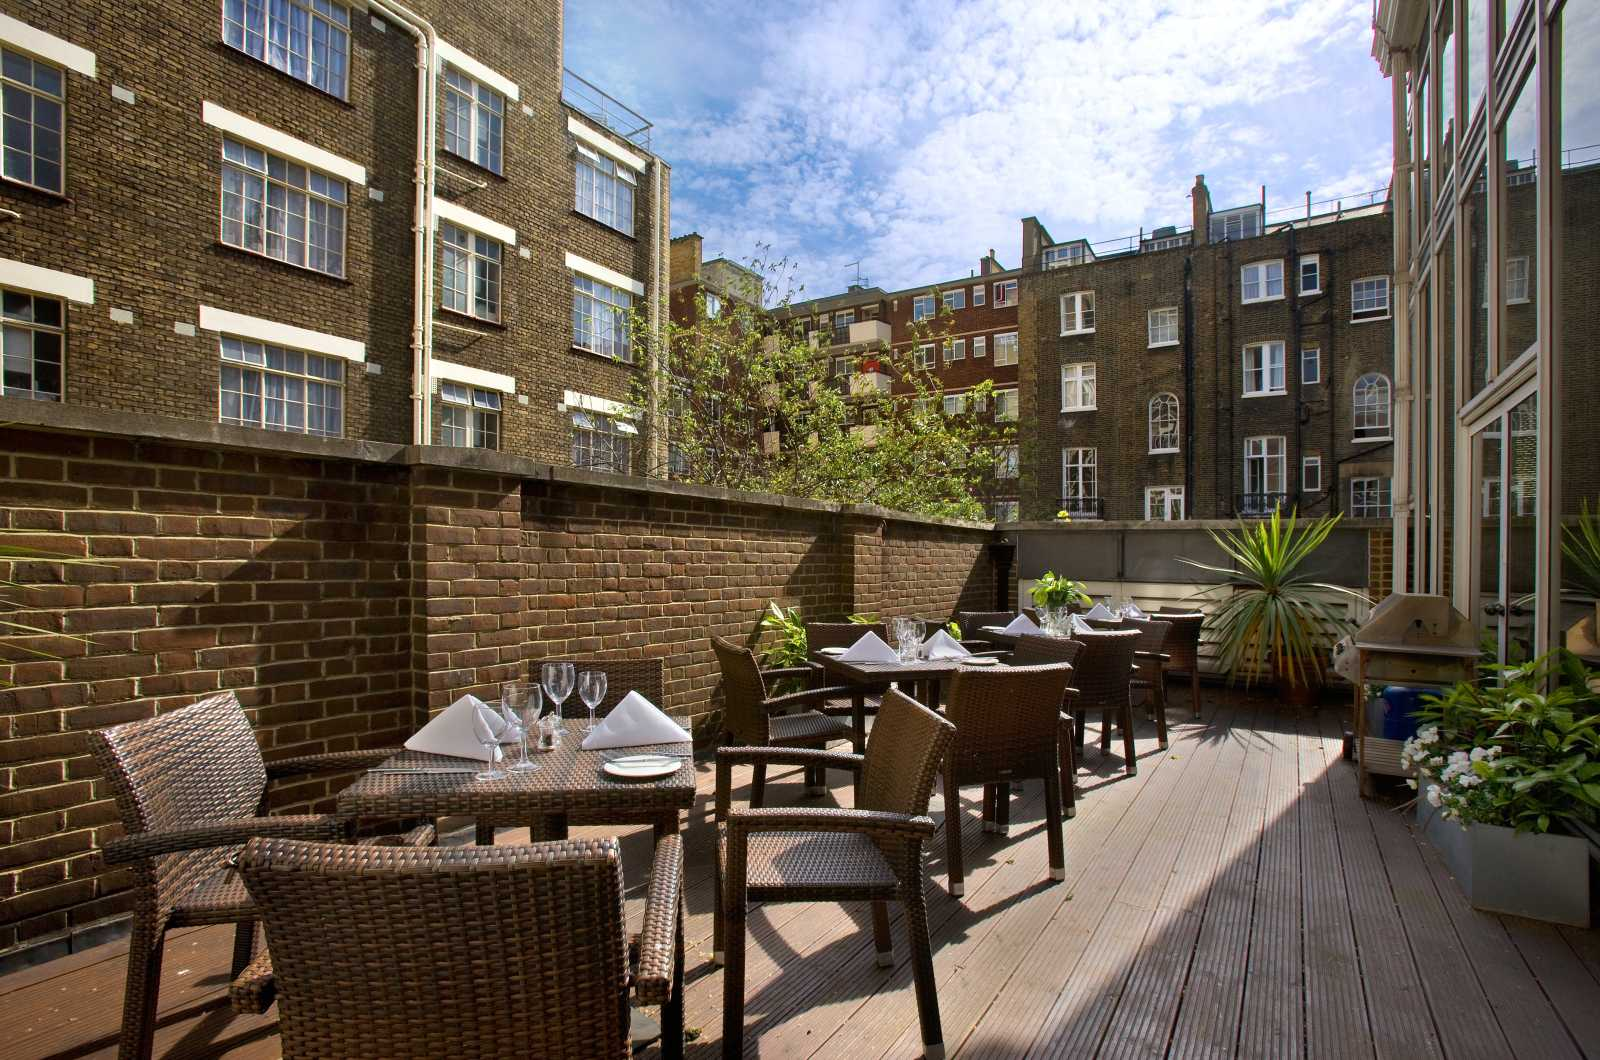 Hotels near Euston Station - Hilton London Euston